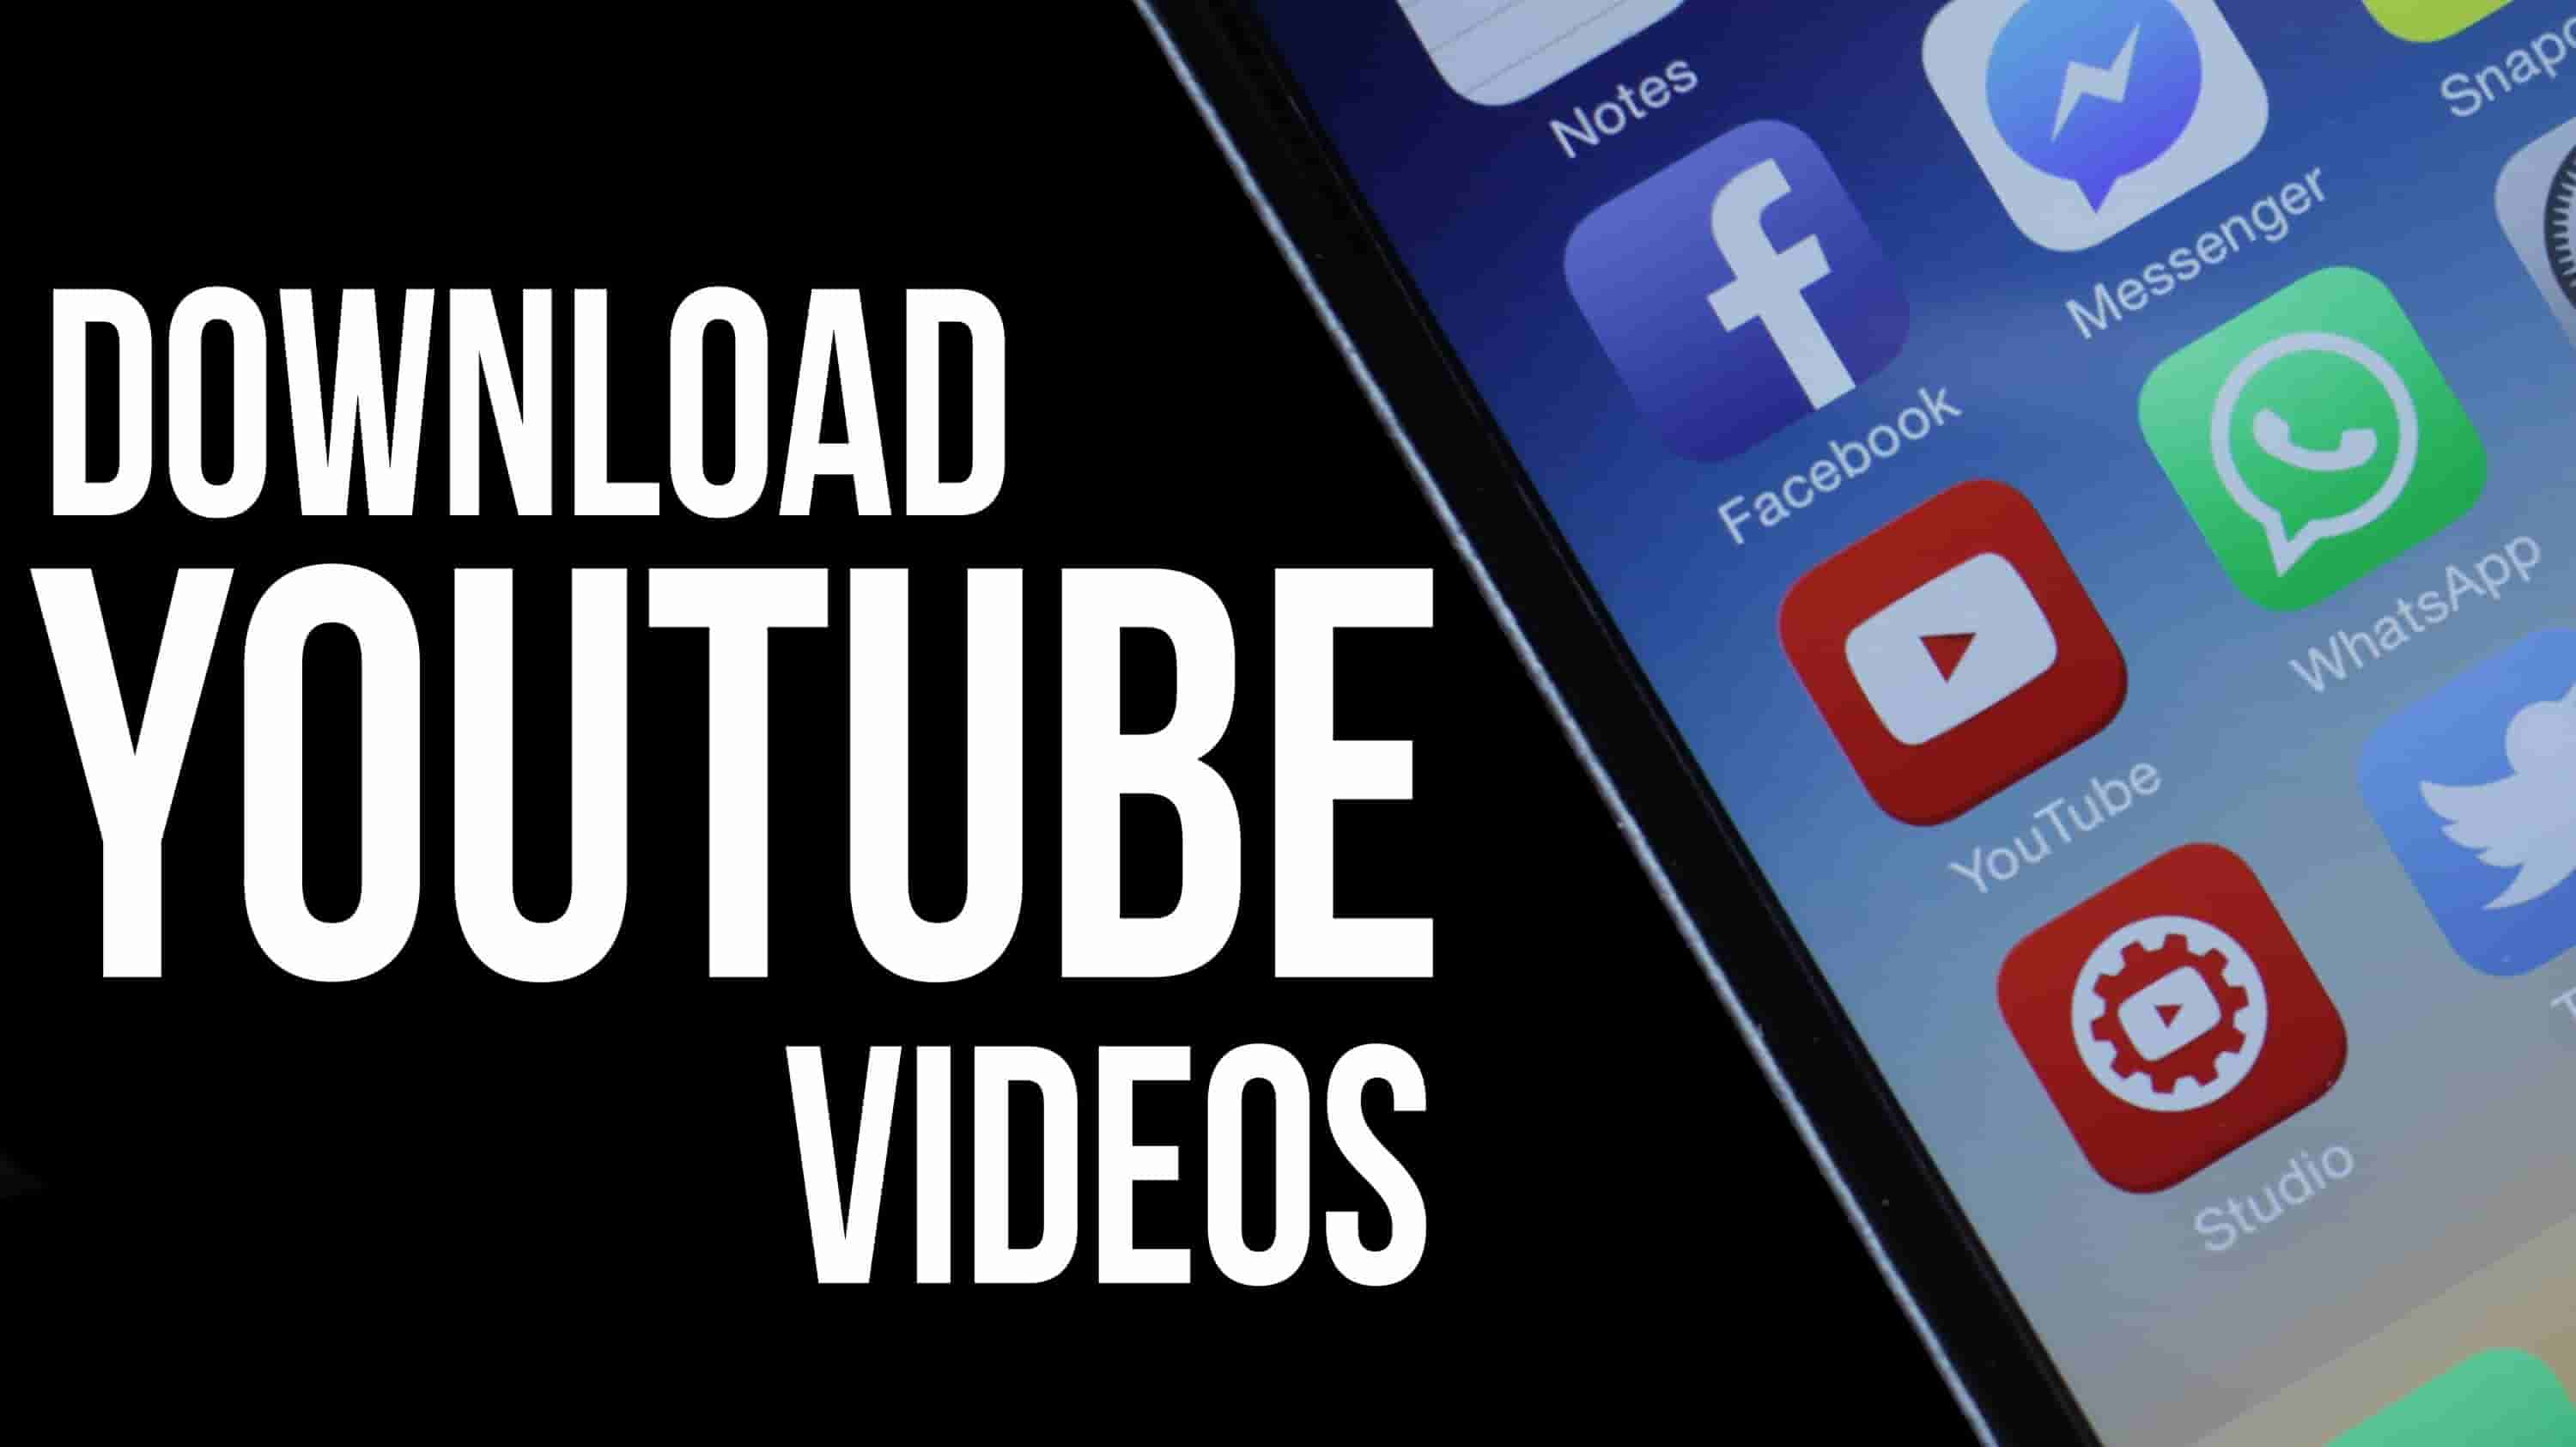 YouTube Now Downloader Best Toolkit for Video and Music Download